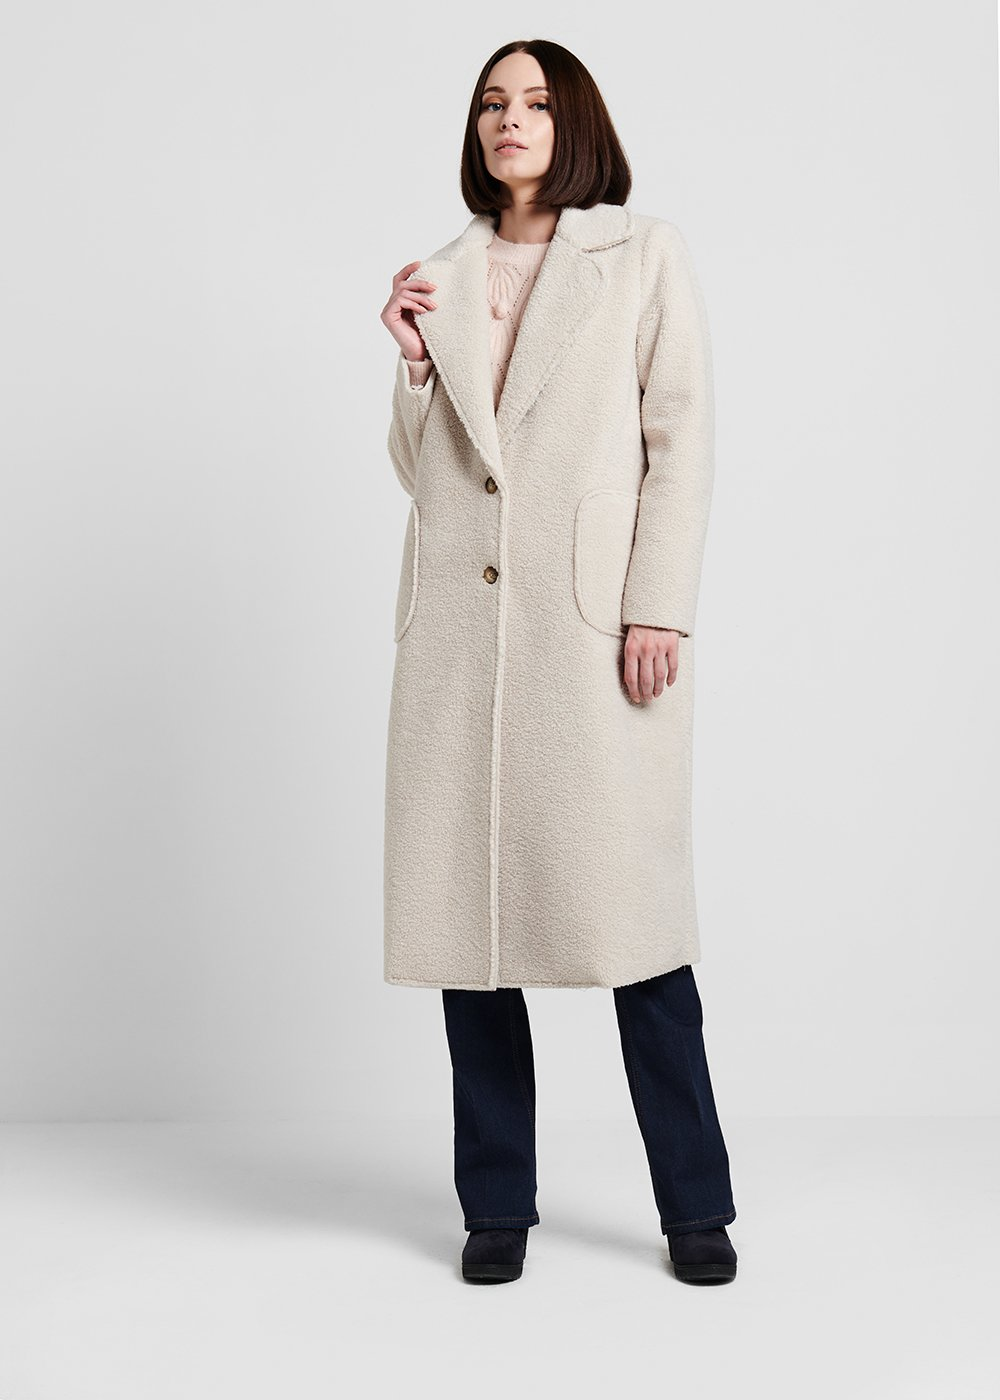 Coat in raw faux sheepskin fabric